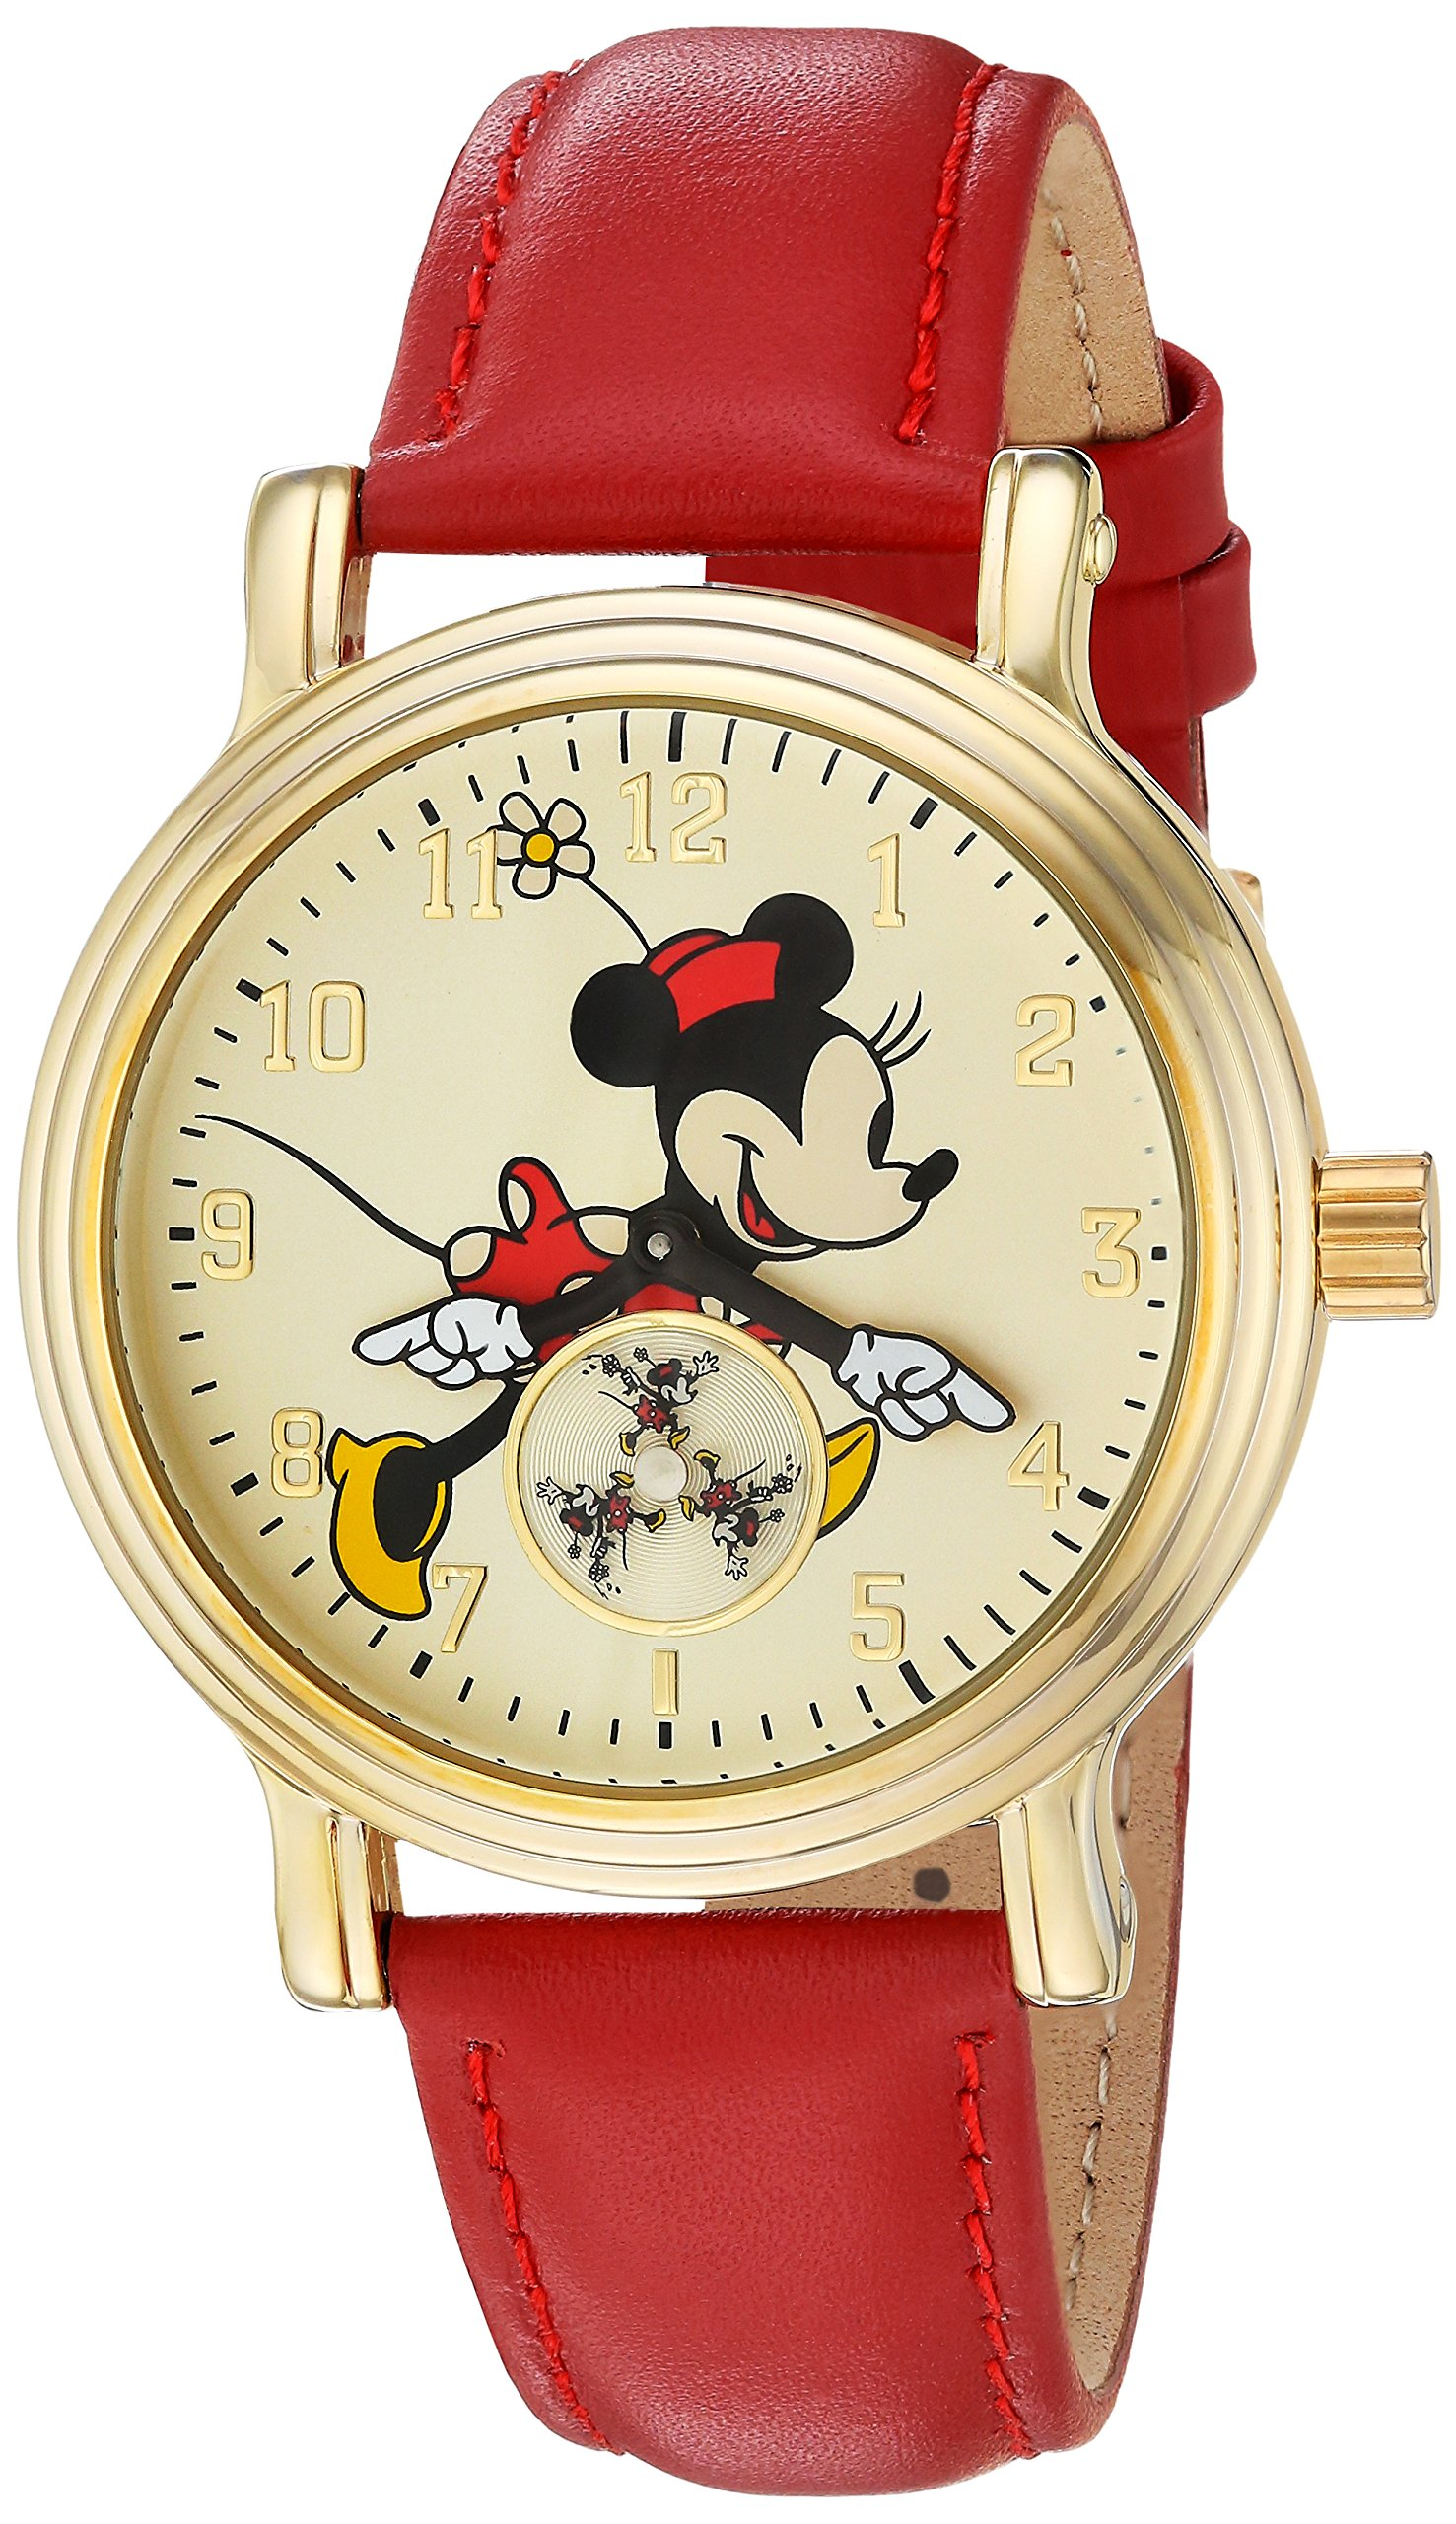 Minnie Mouse Women's Gold Vintage Alloy Watch, Red Leather Strap, W002767